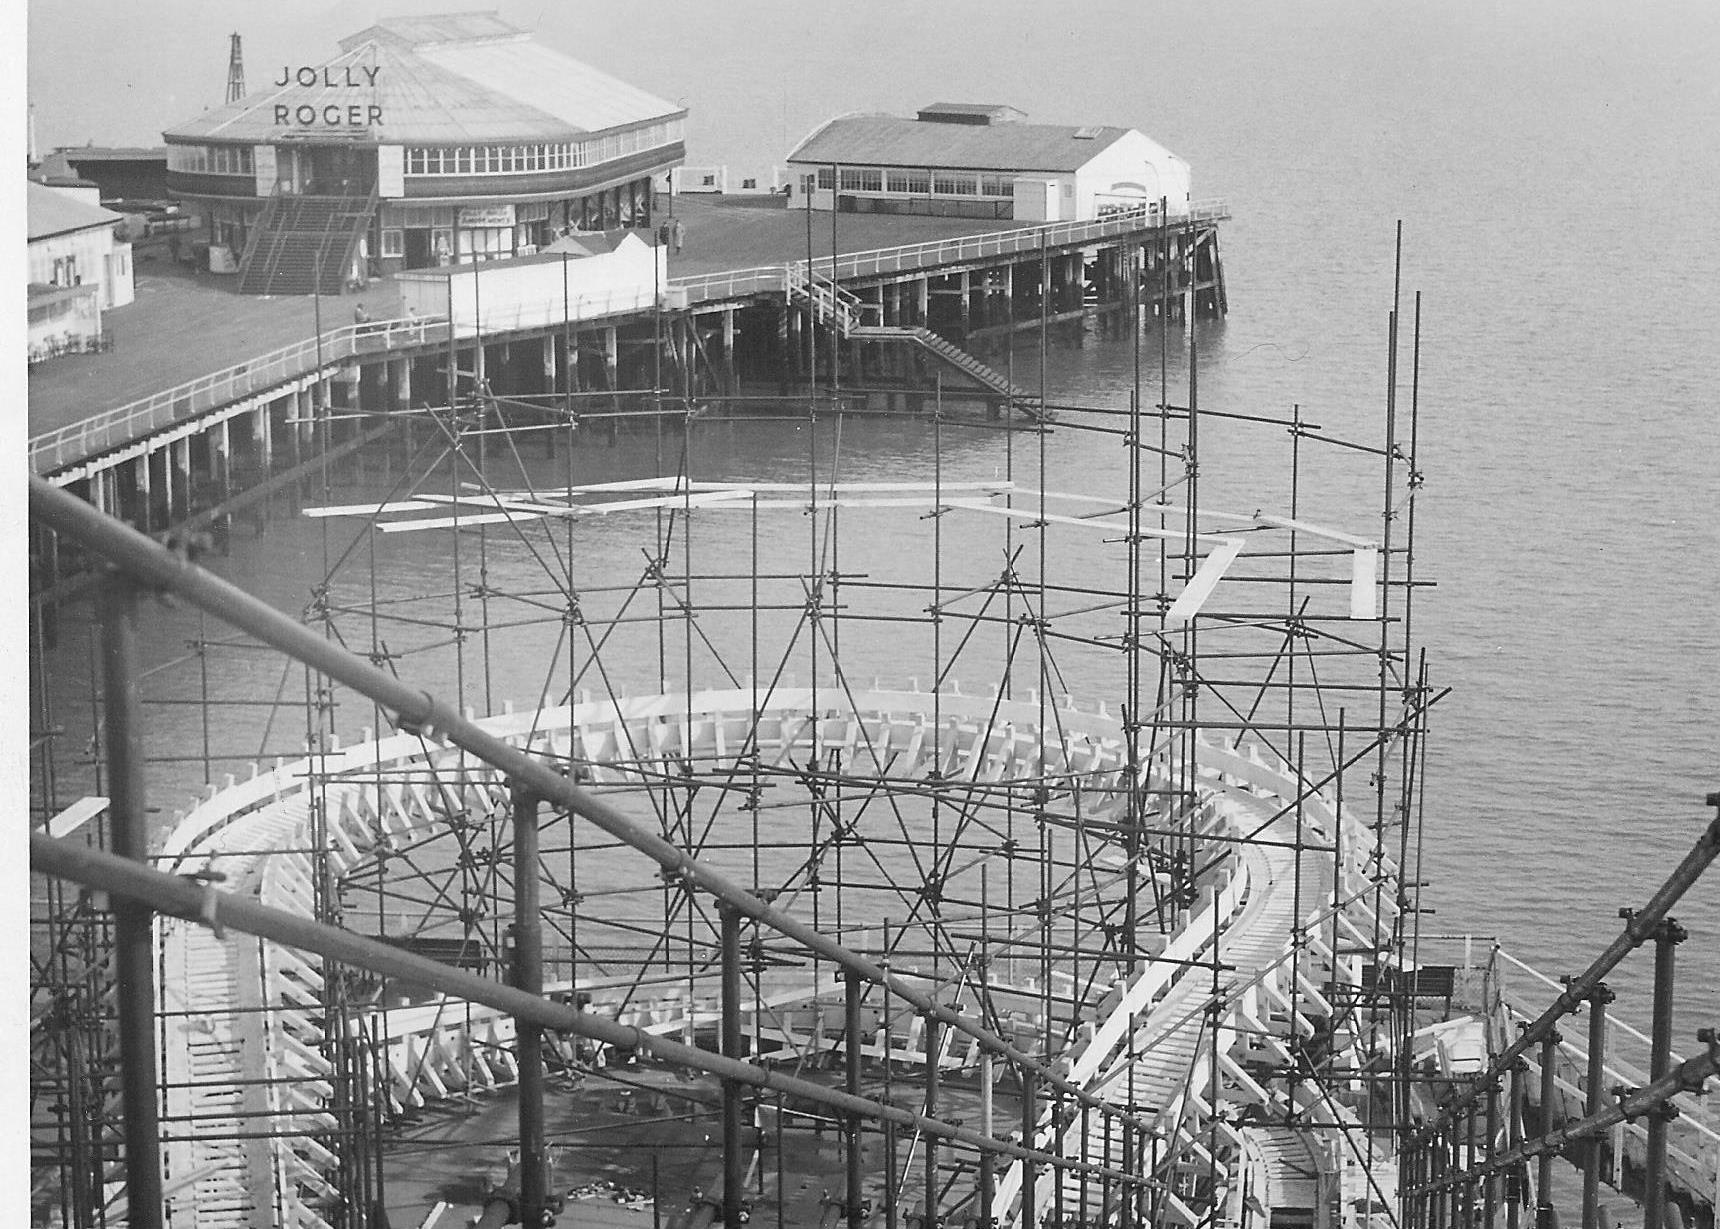 HEYDAY: The Jolly Roger in its heyday at the end of Clacton Pier